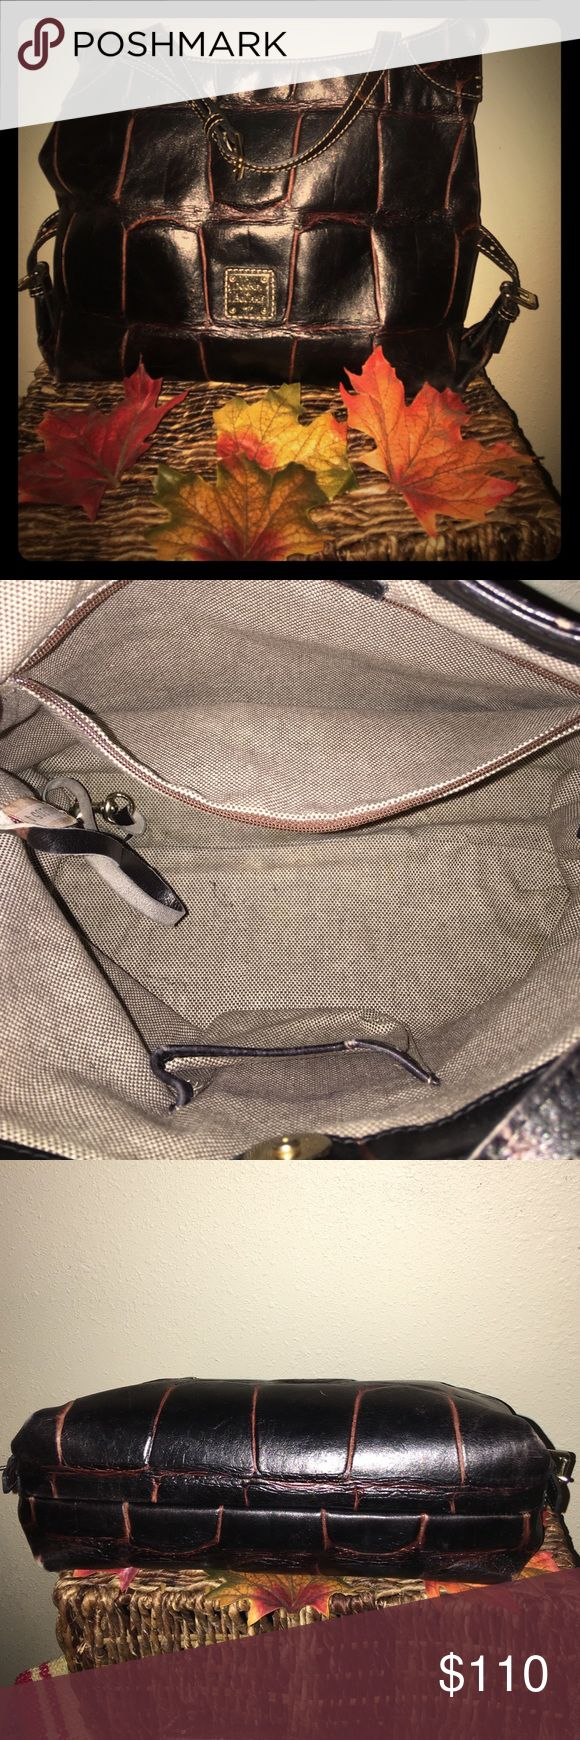 🎁Dooney & Bourke cross body🎁 The richness of the wine 🍷 coloring in this clean, soft leather Dooney is stunning. Key lanyard and the standard phone 📱 pocket and zip 🤐 pocket inside. Light pink interior. This amazingly kept cross body or satchel is so worth the $$$ trust me. Comes with dust bag and extra strap for extension for the cross body. Dooney & Bourke Bags Satchels